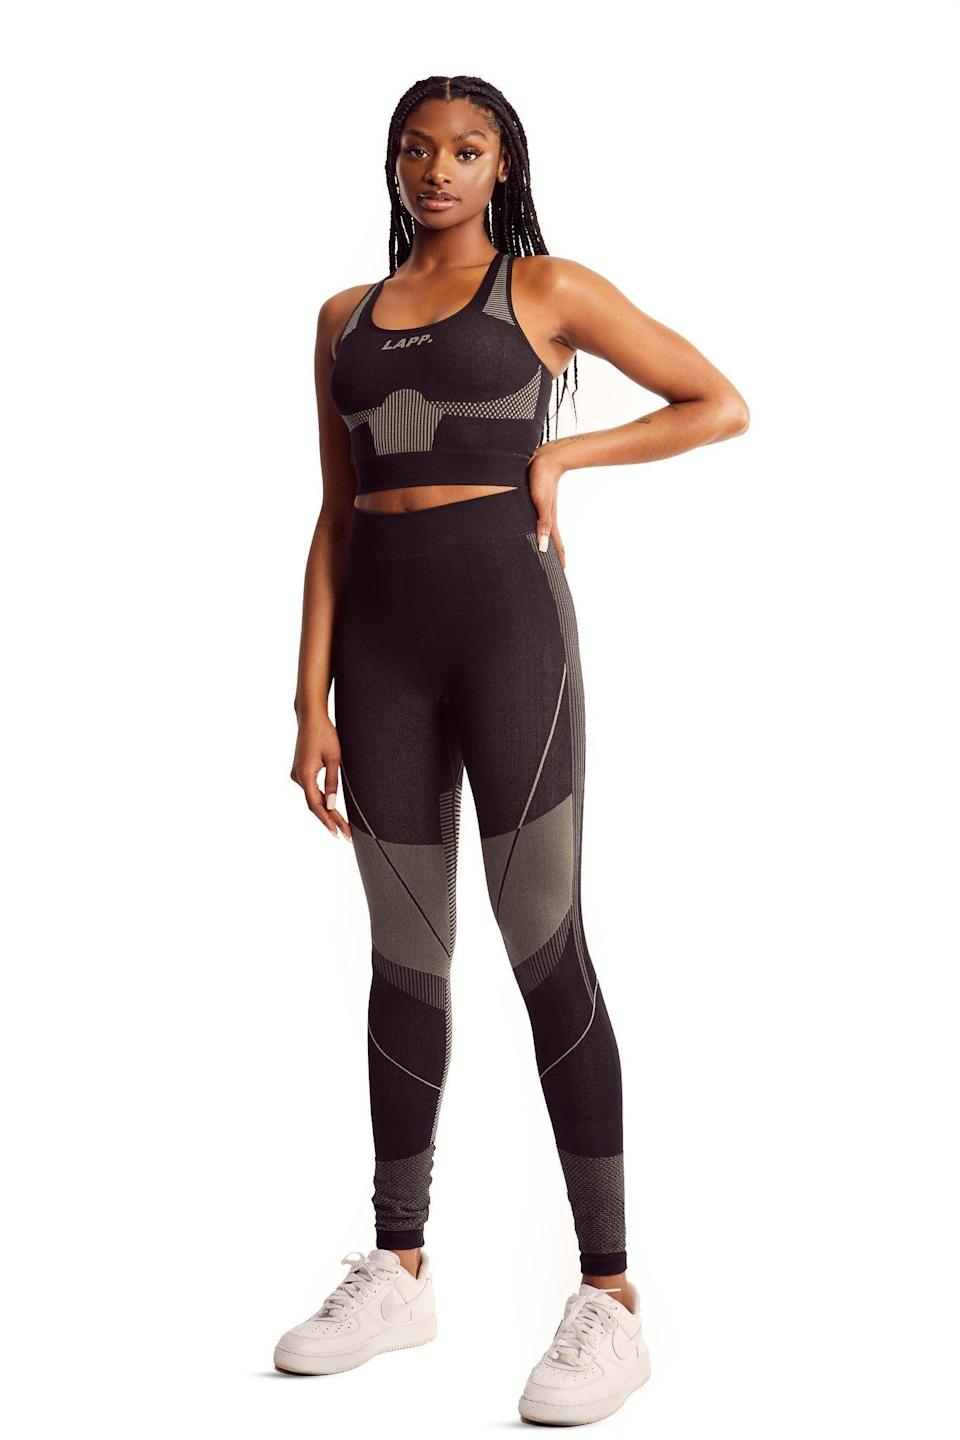 """<p><strong>LAPP </strong></p><p>lappthebrand.com</p><p><strong>£100.00</strong></p><p><a href=""""https://www.lappthebrand.com/collections/2020-leggings/products/black-seamless-legging?variant=32112835428442"""" rel=""""nofollow noopener"""" target=""""_blank"""" data-ylk=""""slk:Shop Now"""" class=""""link rapid-noclick-resp"""">Shop Now</a></p><p>Creative director <a href=""""https://www.harpersbazaar.com/fashion/models/a27042294/leomie-anderson-new-victorias-secret-angel/"""" rel=""""nofollow noopener"""" target=""""_blank"""" data-ylk=""""slk:Leomie Anderson"""" class=""""link rapid-noclick-resp"""">Leomie Anderson</a> jumpstarted her sportswear line in 2016, after building a community with her blog-turned-digital magazine that focused on empowering women. The Victoria's Secret Angel began posting articles centered on equipping young women with insight and knowledge for finding a voice when faced with unfair treatment, prejudice, and pressure. Since launching her first sportswear collection, focused on reclaiming the word """"no,"""" the <em>Forbes </em>30 Under 30 entrepreneur has expanded her designs to include geometric cut out tops, figure conforming leggings and easy sweatsuits. </p>"""